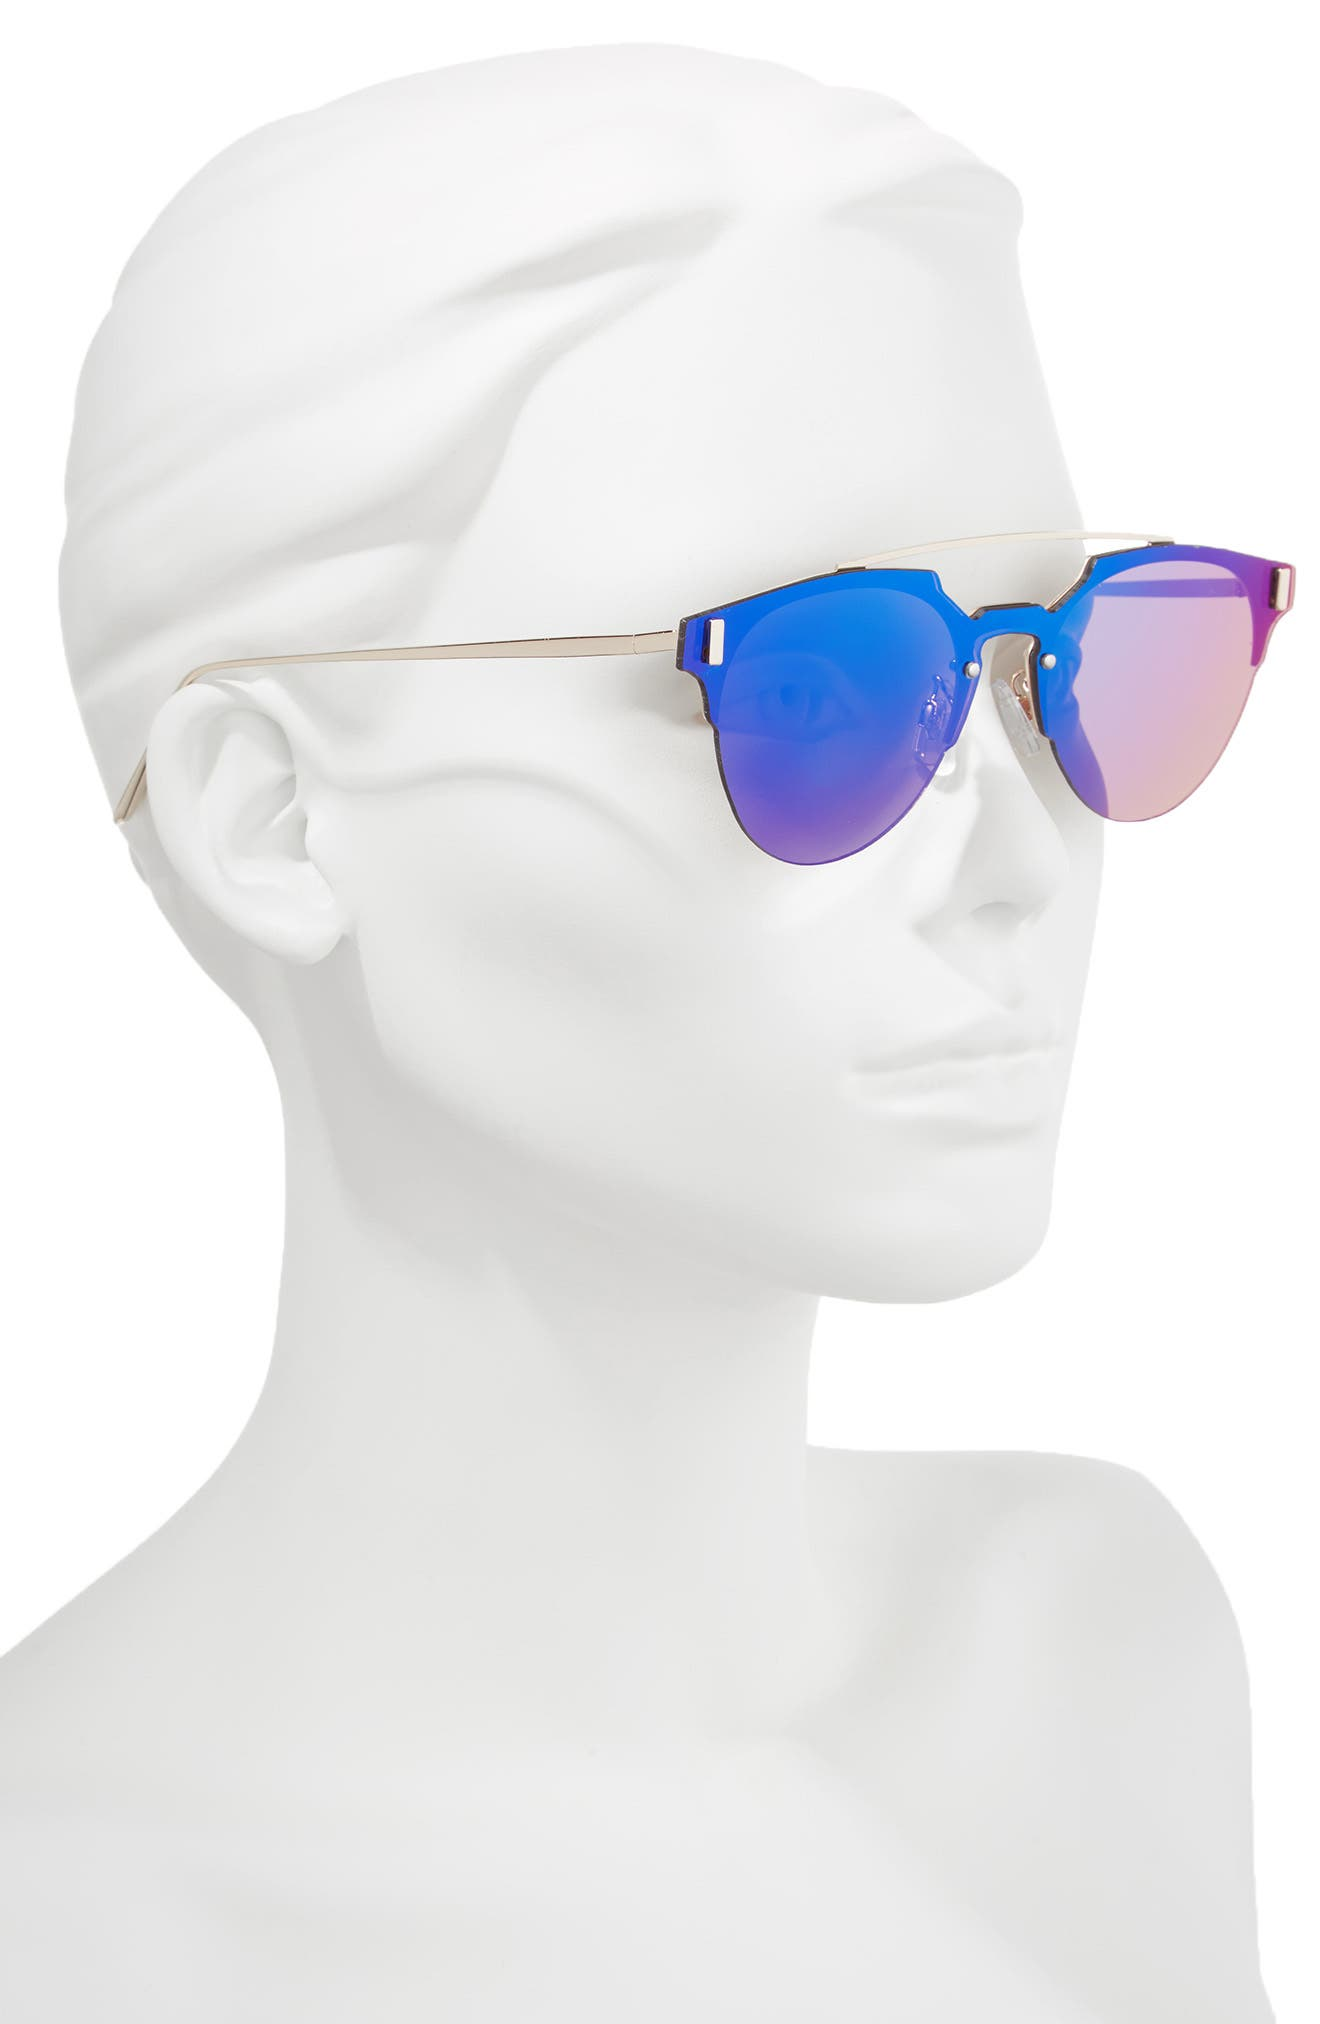 50mm Mirrored Round Sunglasses,                             Alternate thumbnail 2, color,                             400